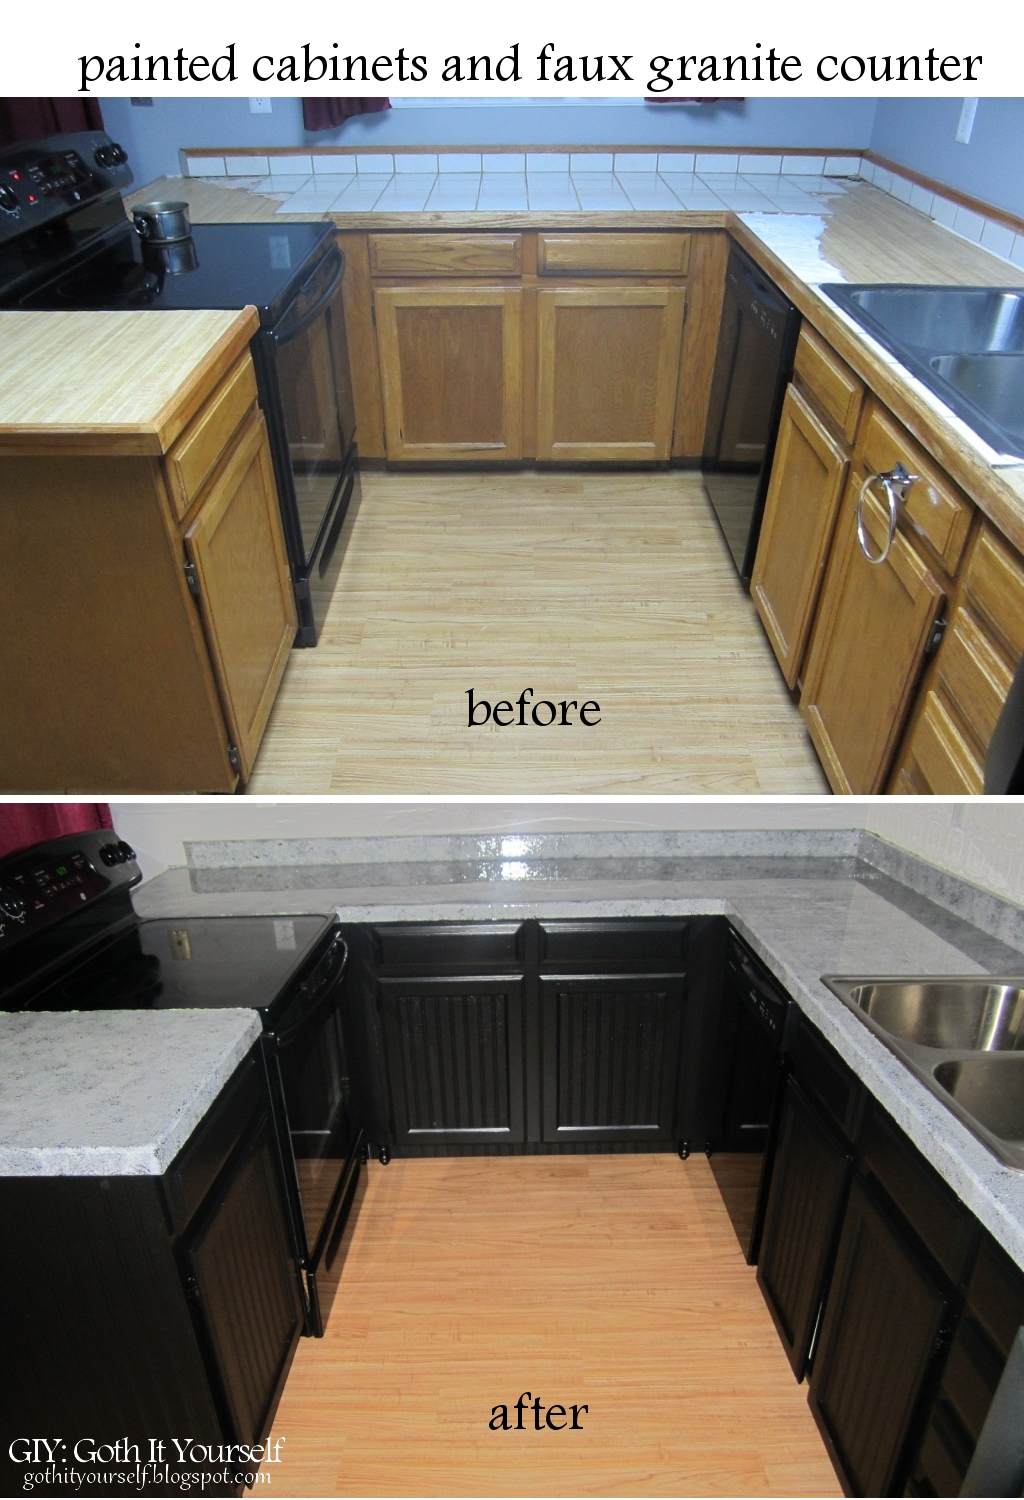 Fake granite kitchen countertops full size of granite fake granite perfect fake granite kitchen countertops with fake granite kitchen countertops easy ways to get inexpensive solutioingenieria Choice Image